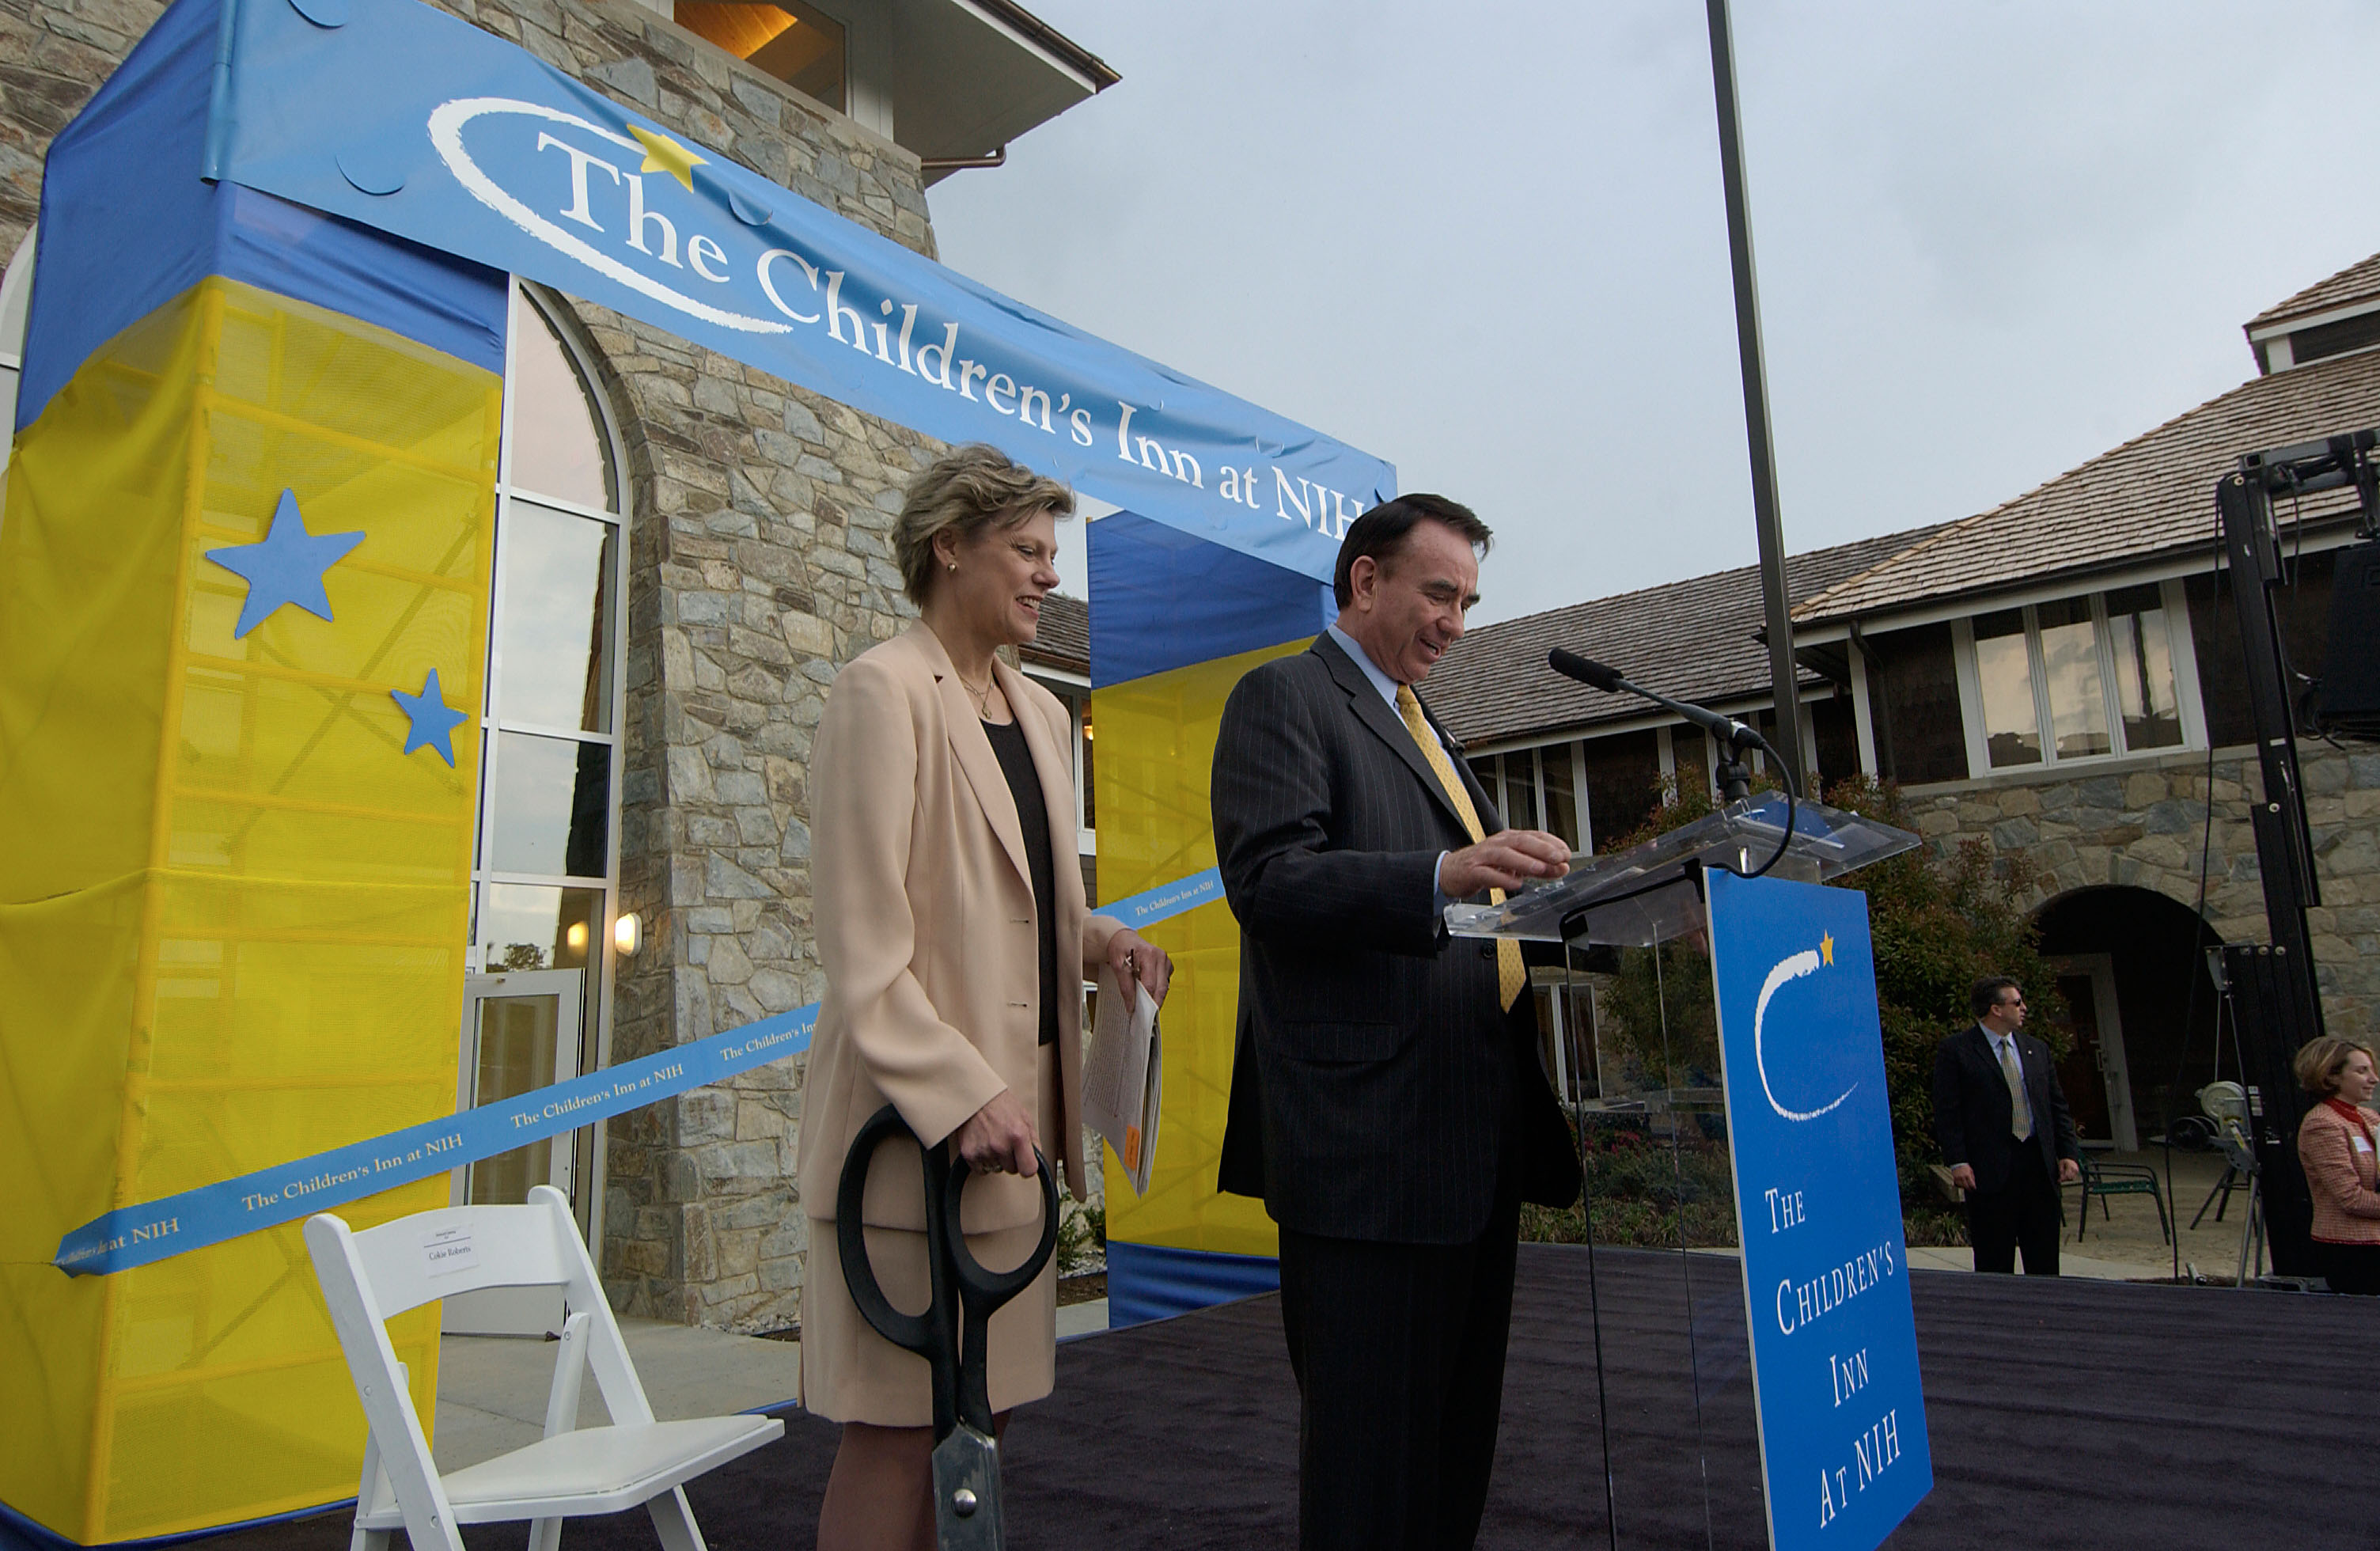 Inn board member Cokie Roberts at the opening of the new wing at The Inn